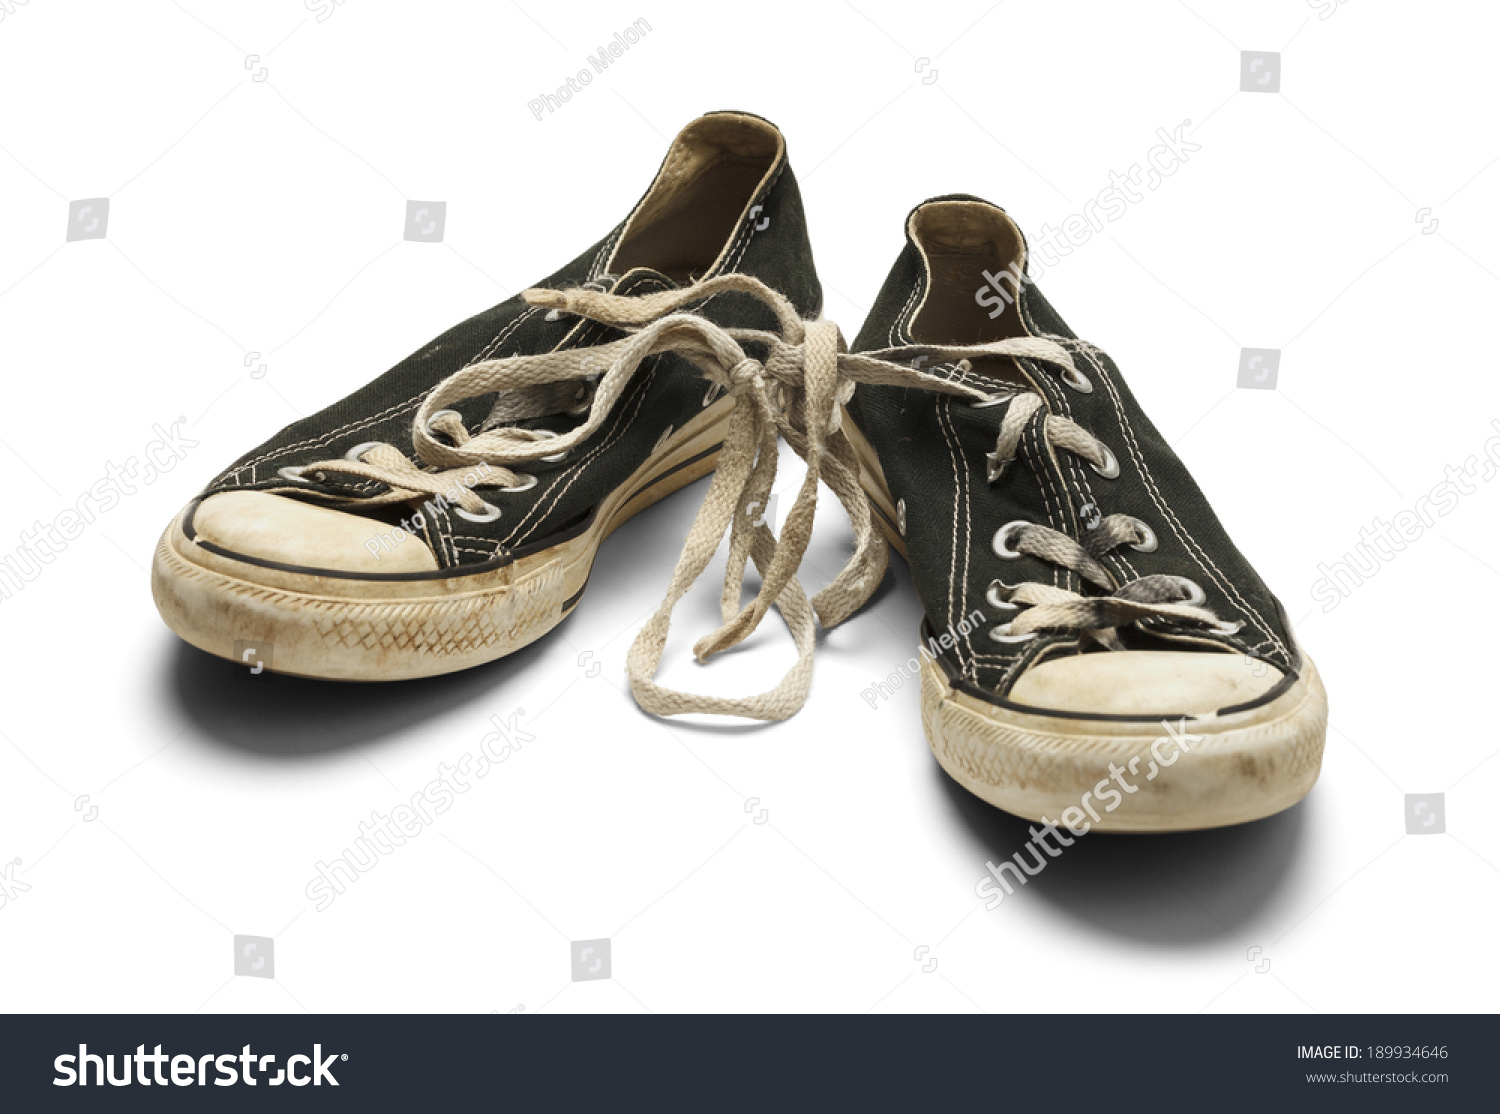 27f56747b9f7 Old Dirty Worn Pair of Canvas Shoes With Knot in Shoe Laces Isolated on White  Background